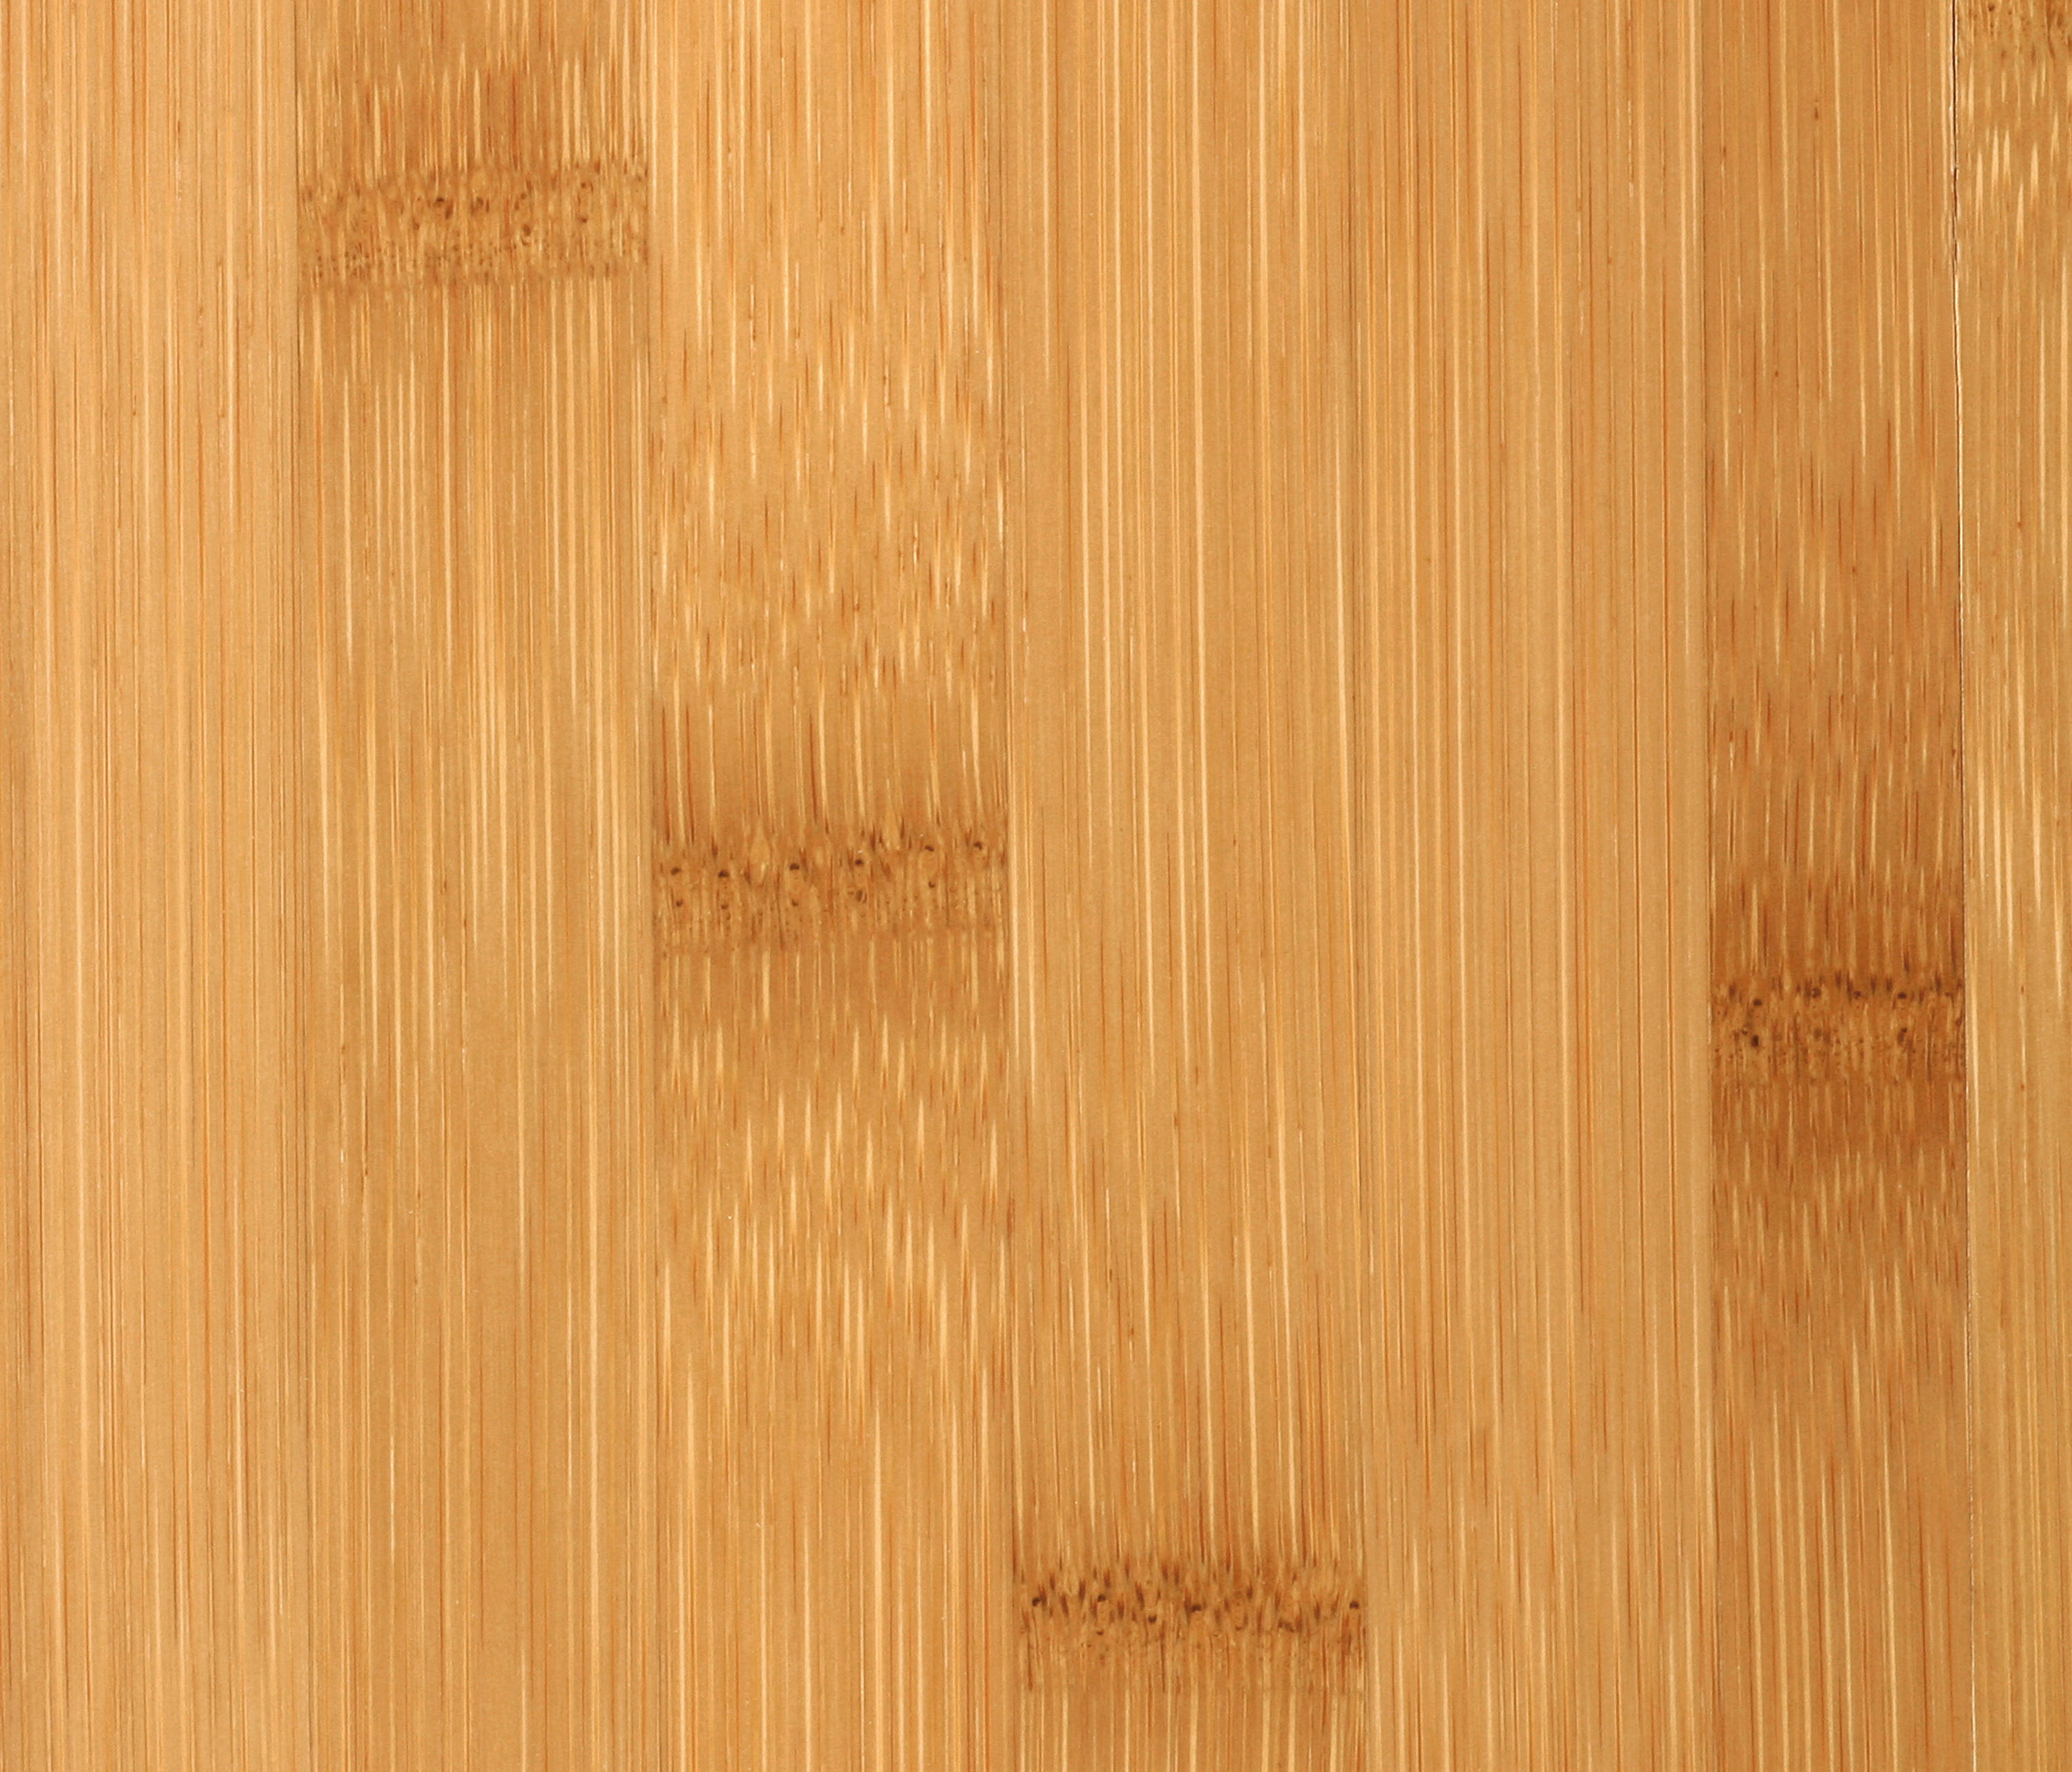 solid joist plainpressed caramel - pannelli moso bamboo products ... - Cucine Caramel